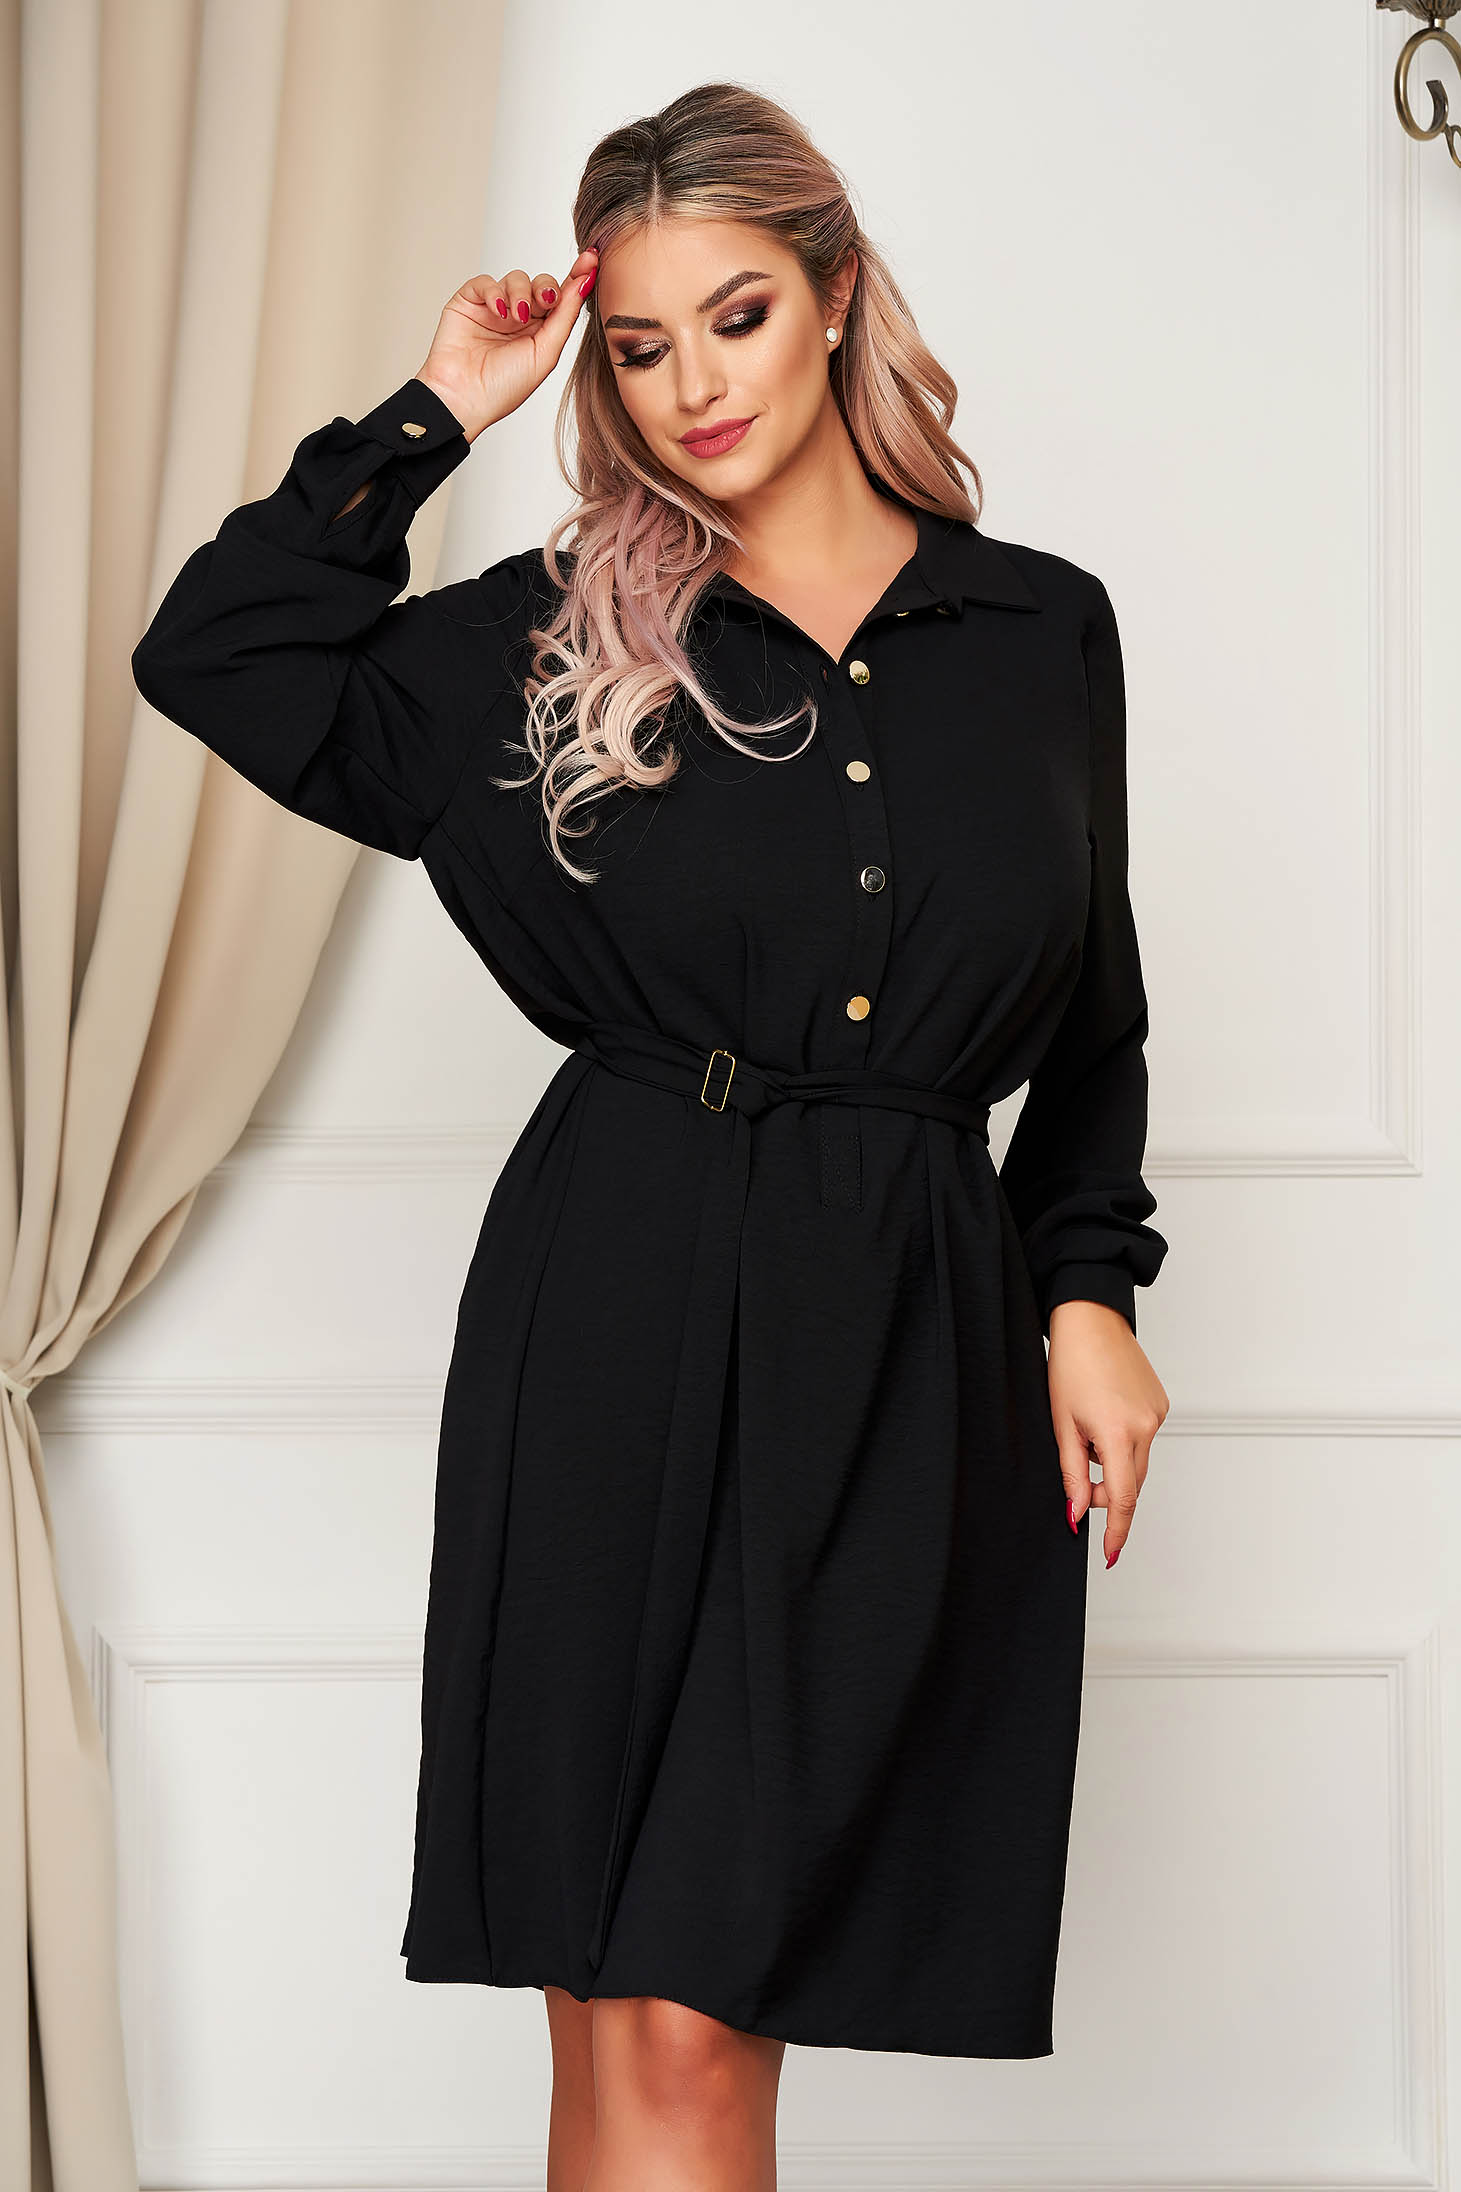 StarShinerS black dress daily flared accessorized with tied waistband with button accessories